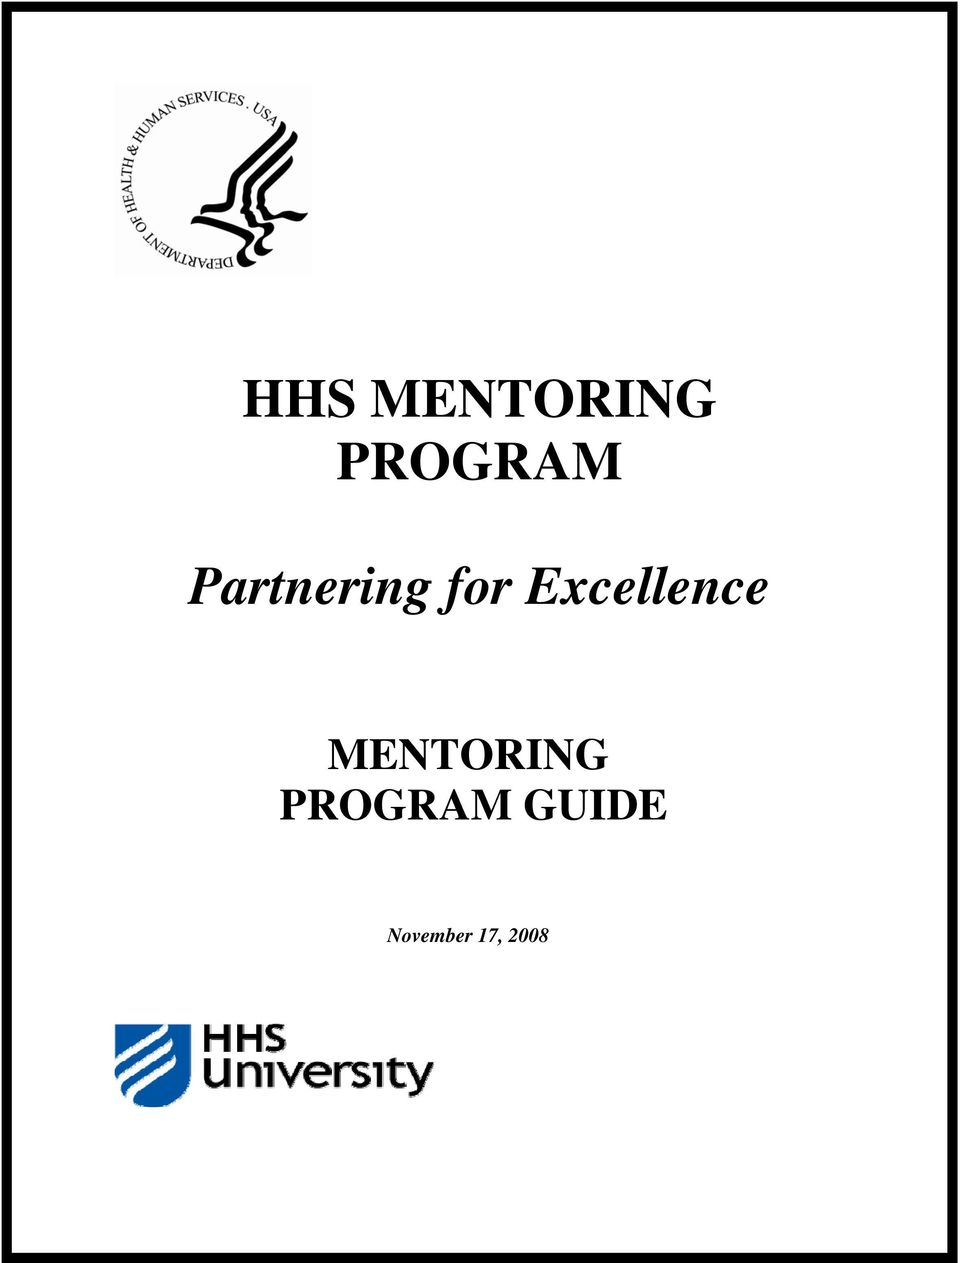 Excellence MENTORING